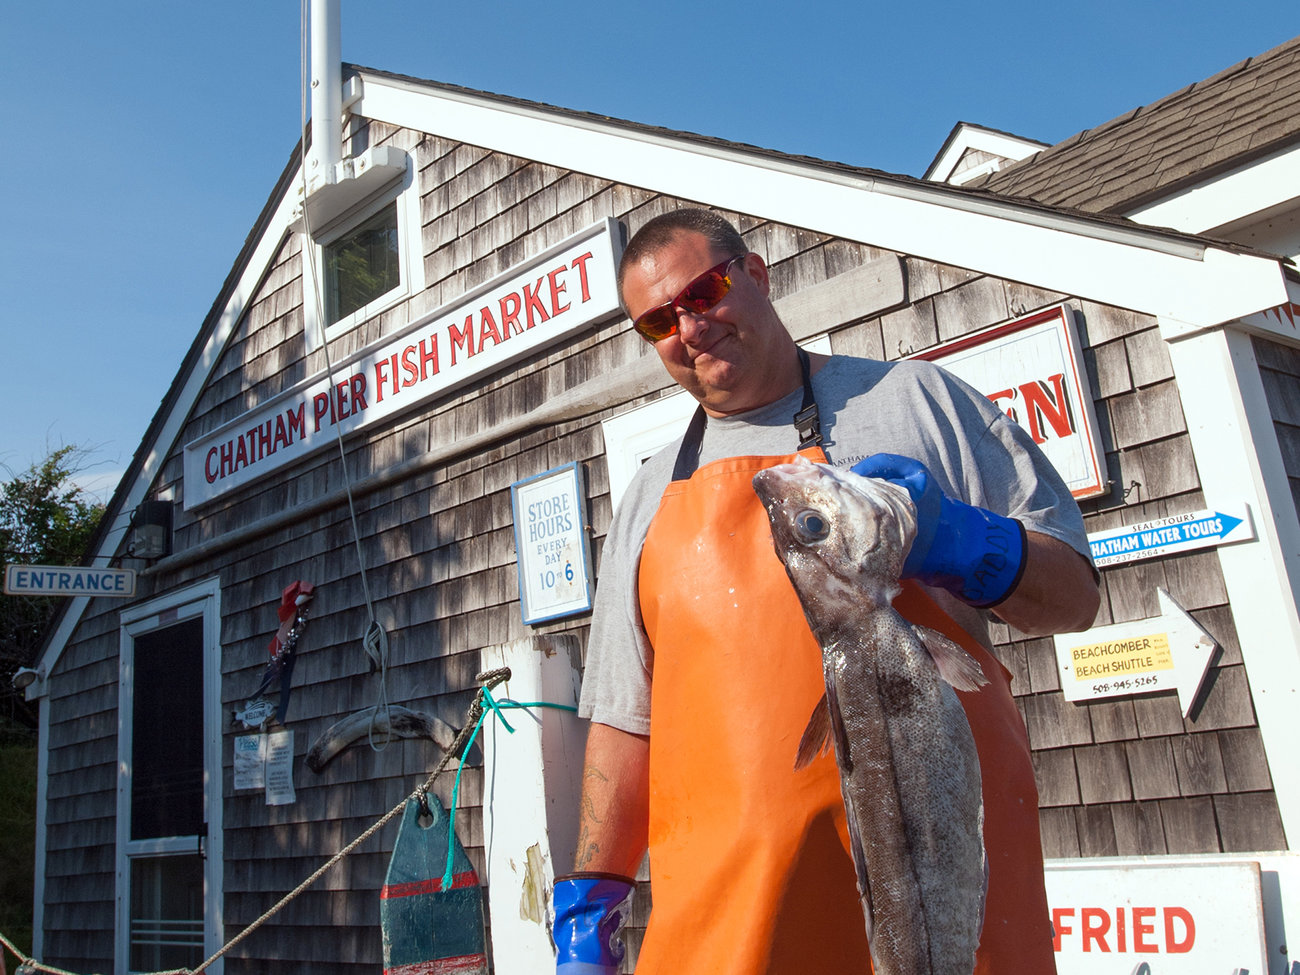 Chatham Pier Fish Market in Cape Cod